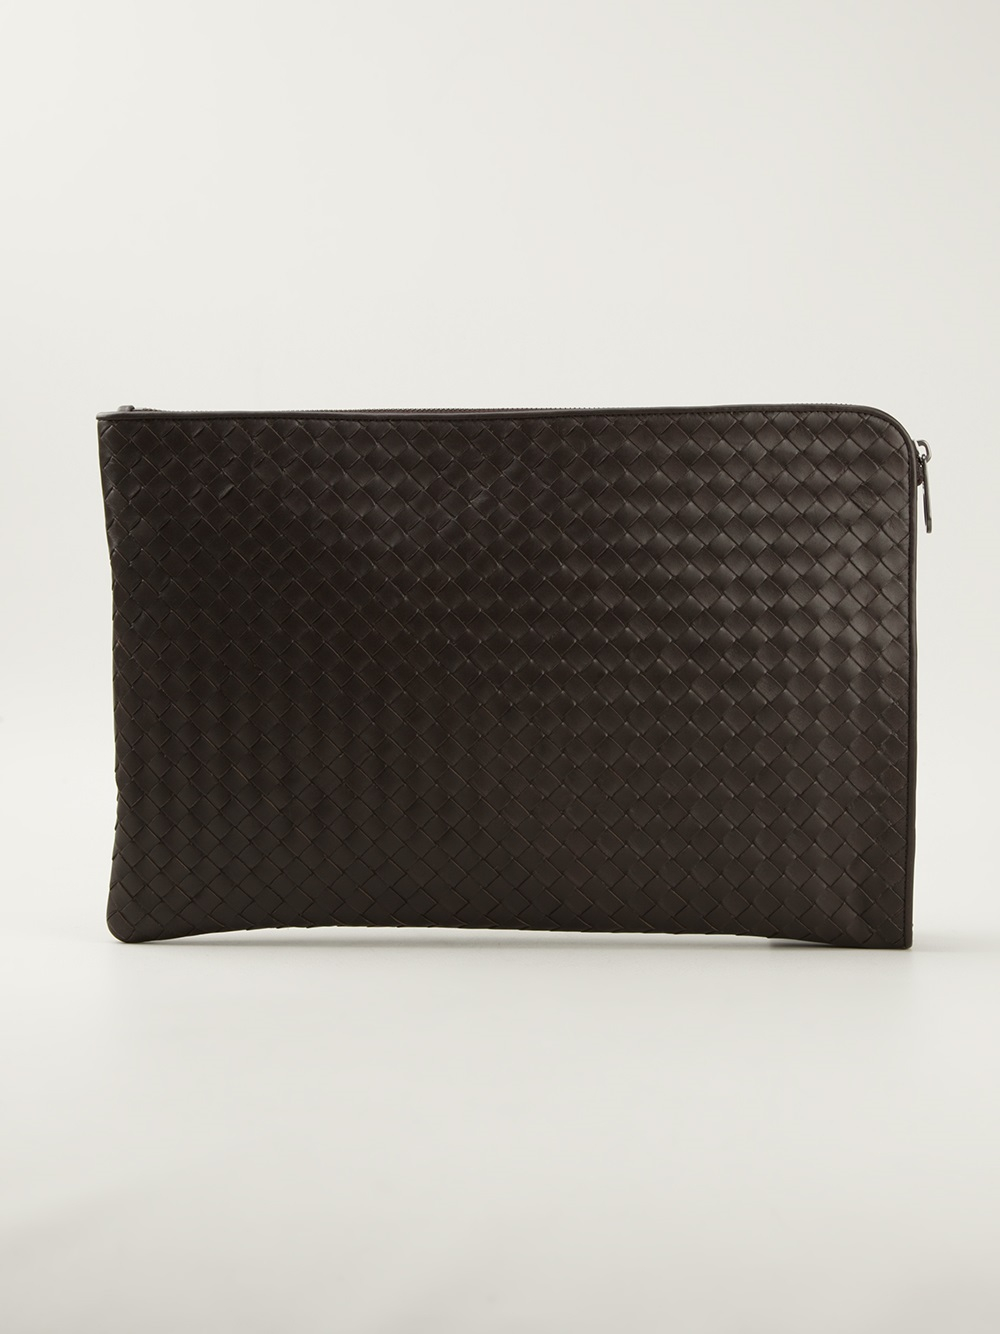 The Bottega Veneta Clutch Every Celeb Is Carrying - Yahoo